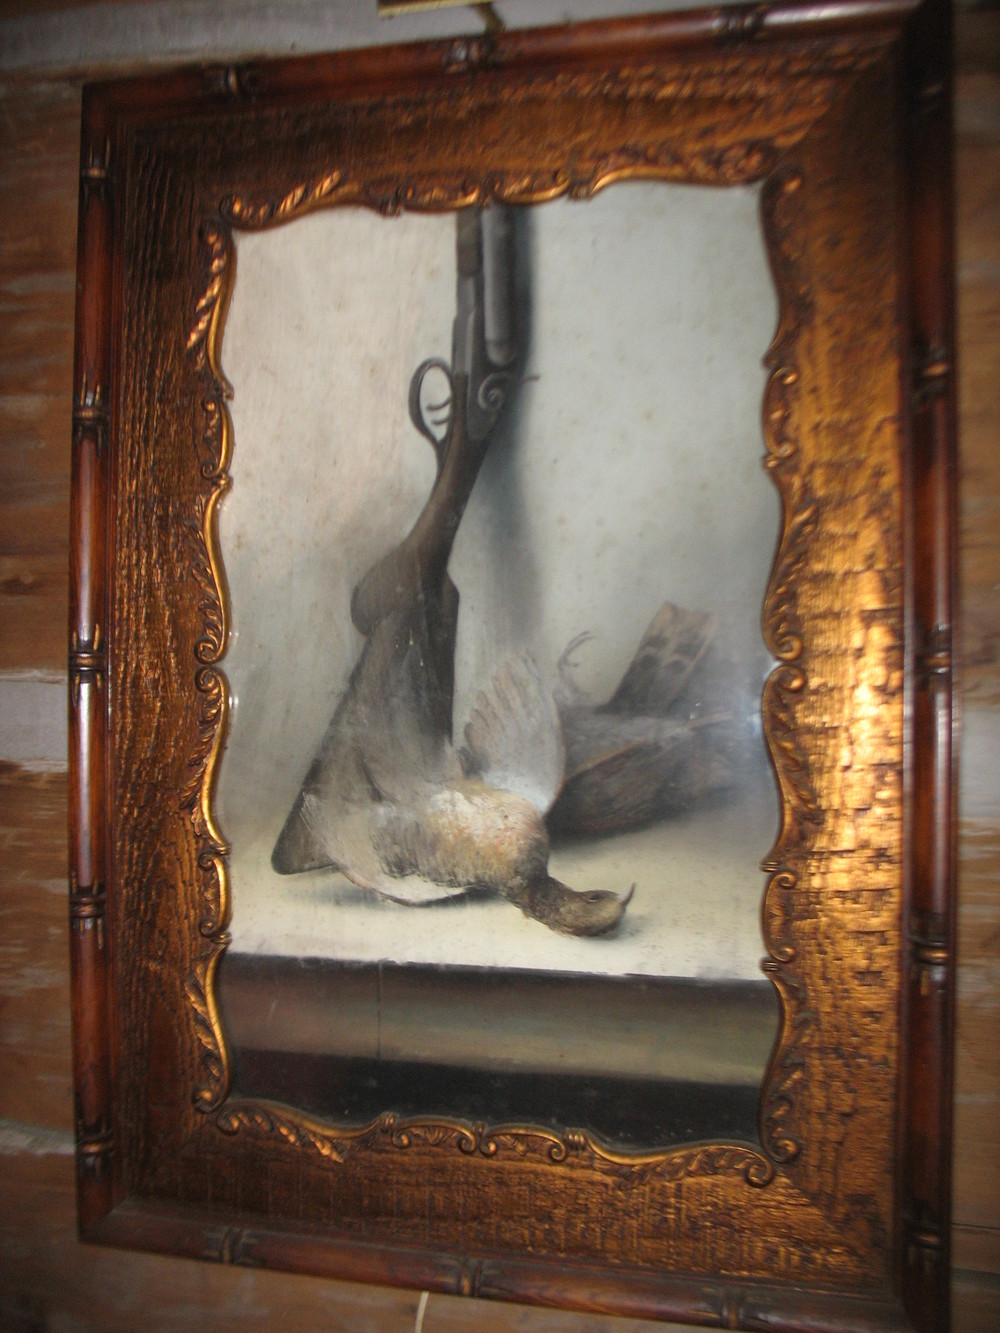 Very unusual Charcoal of a hunting scene. In original frame it is a hunting gun with the pheasant at the butt of the gun on a table. Measures 34 inches in height and 24 inches in width. ca: 1880's/90's